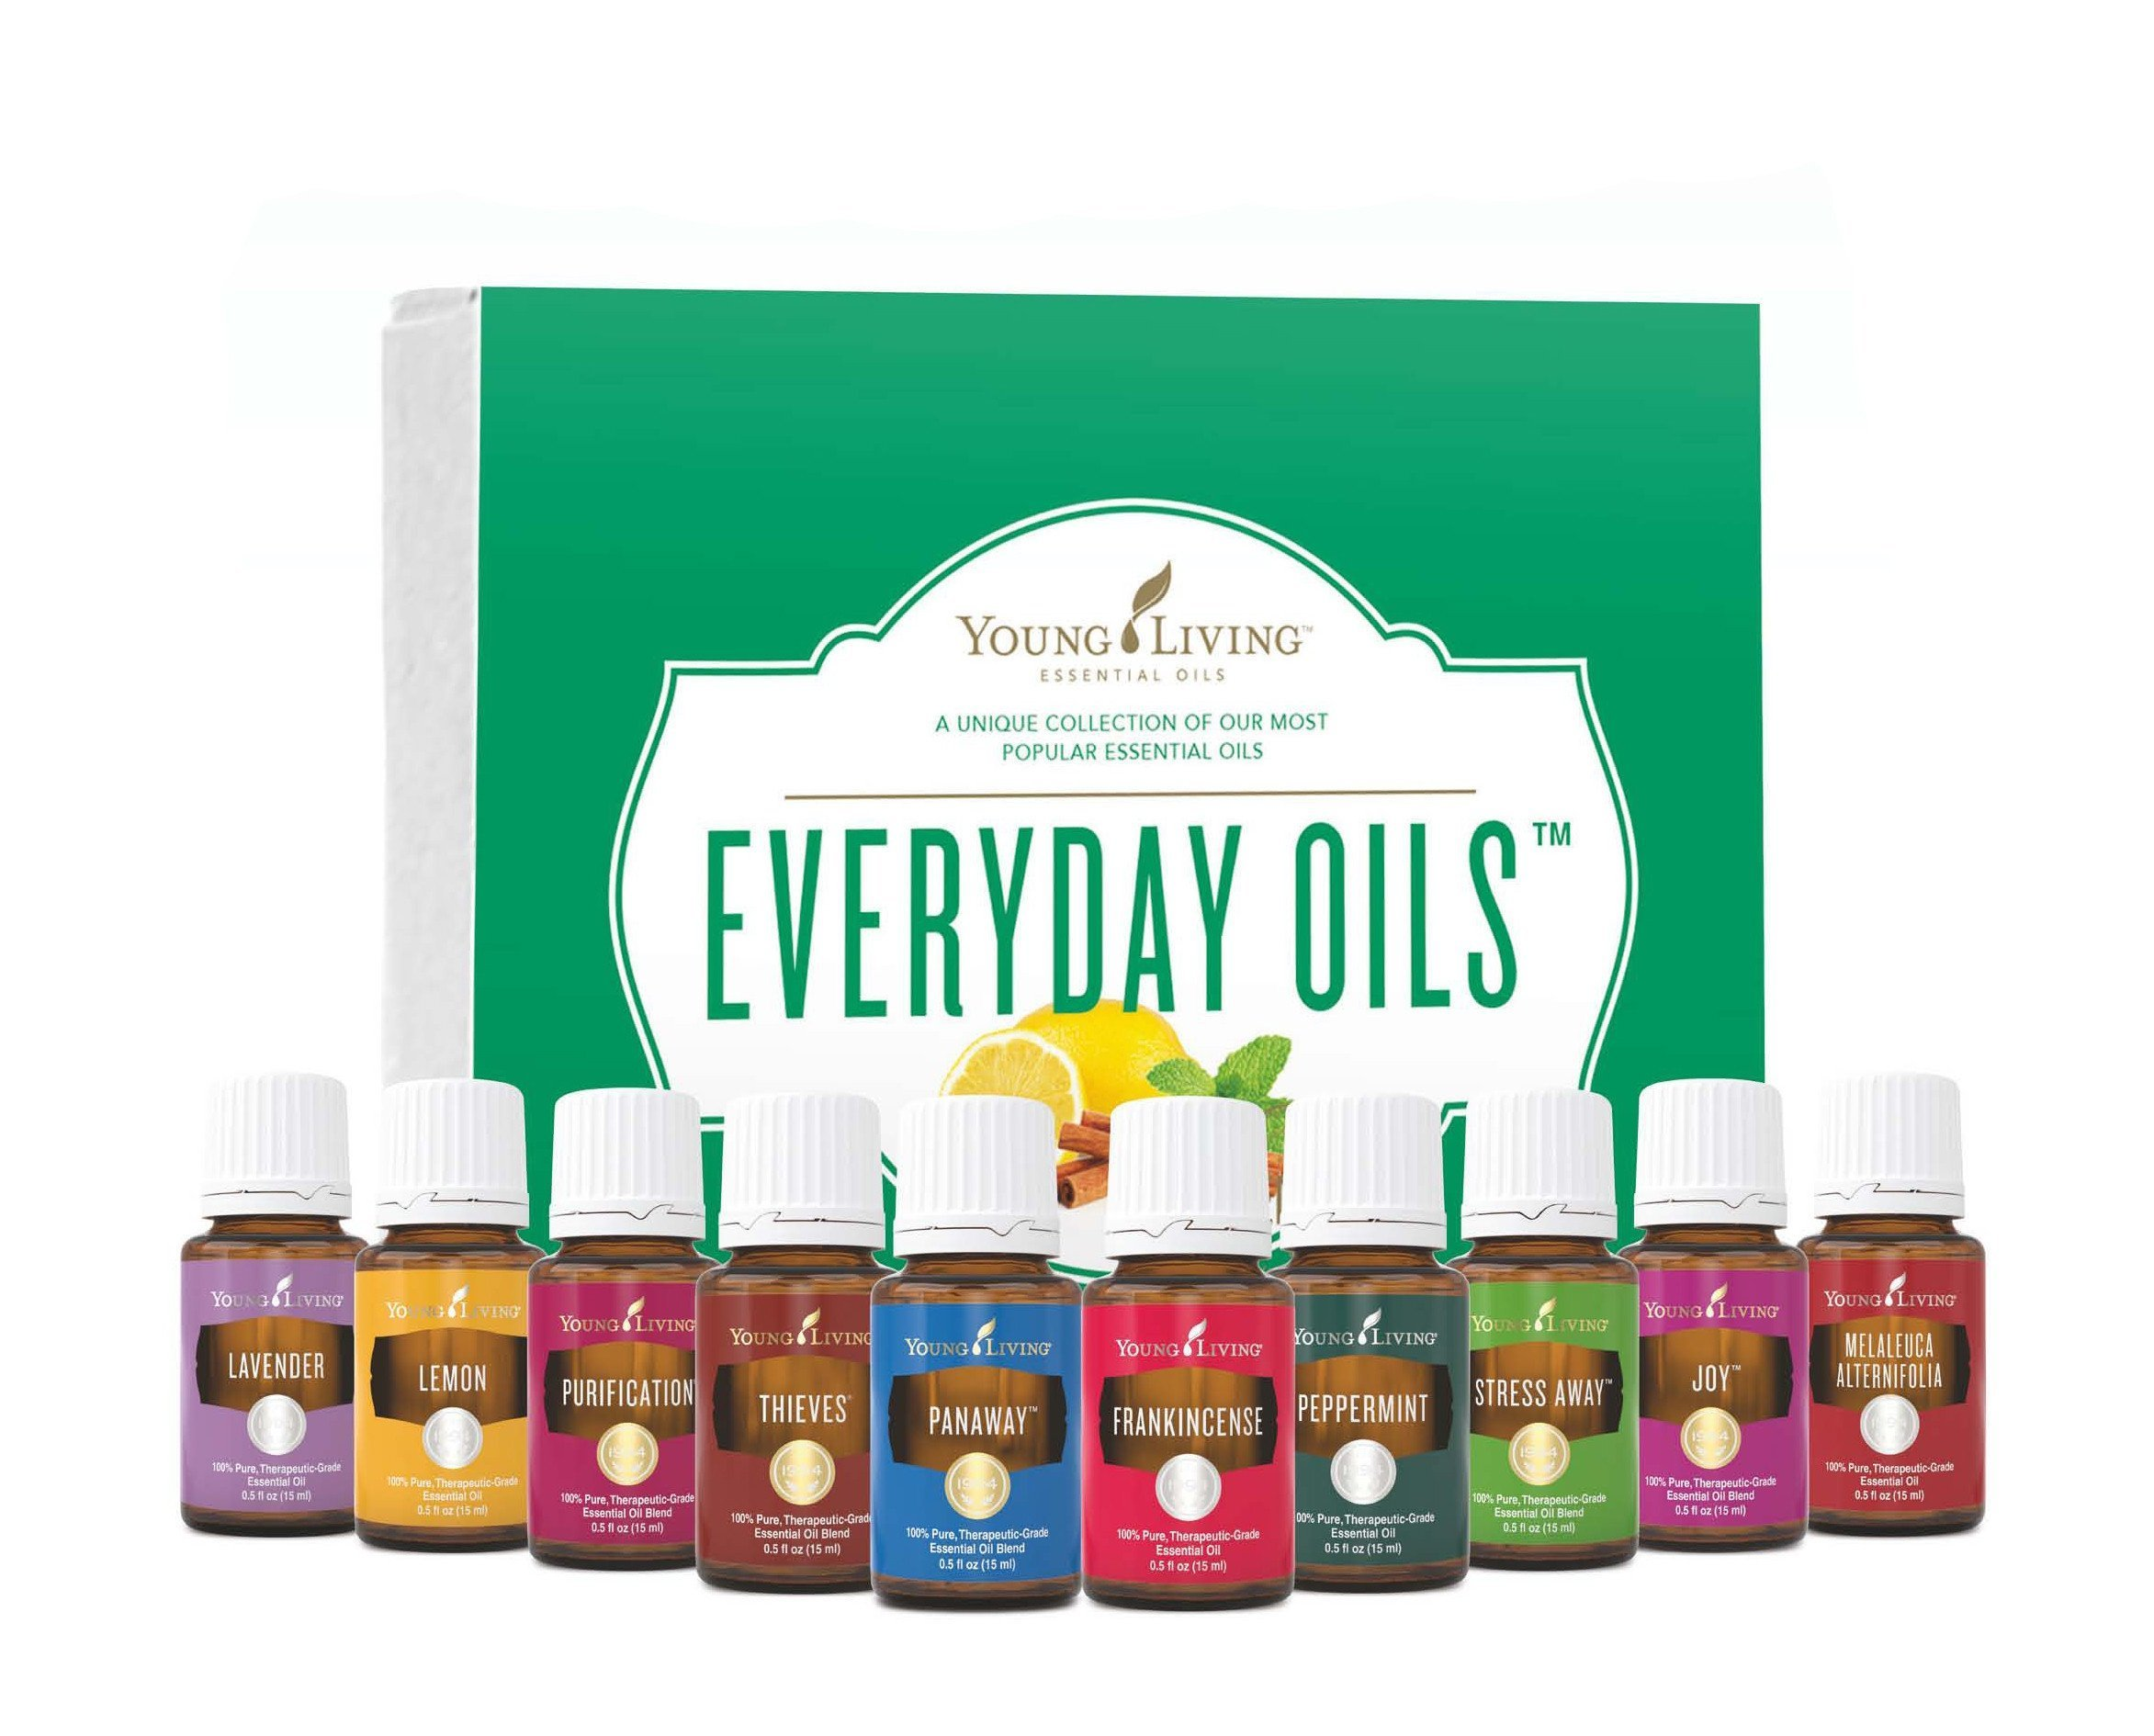 young-living-everyday-oils-essentials